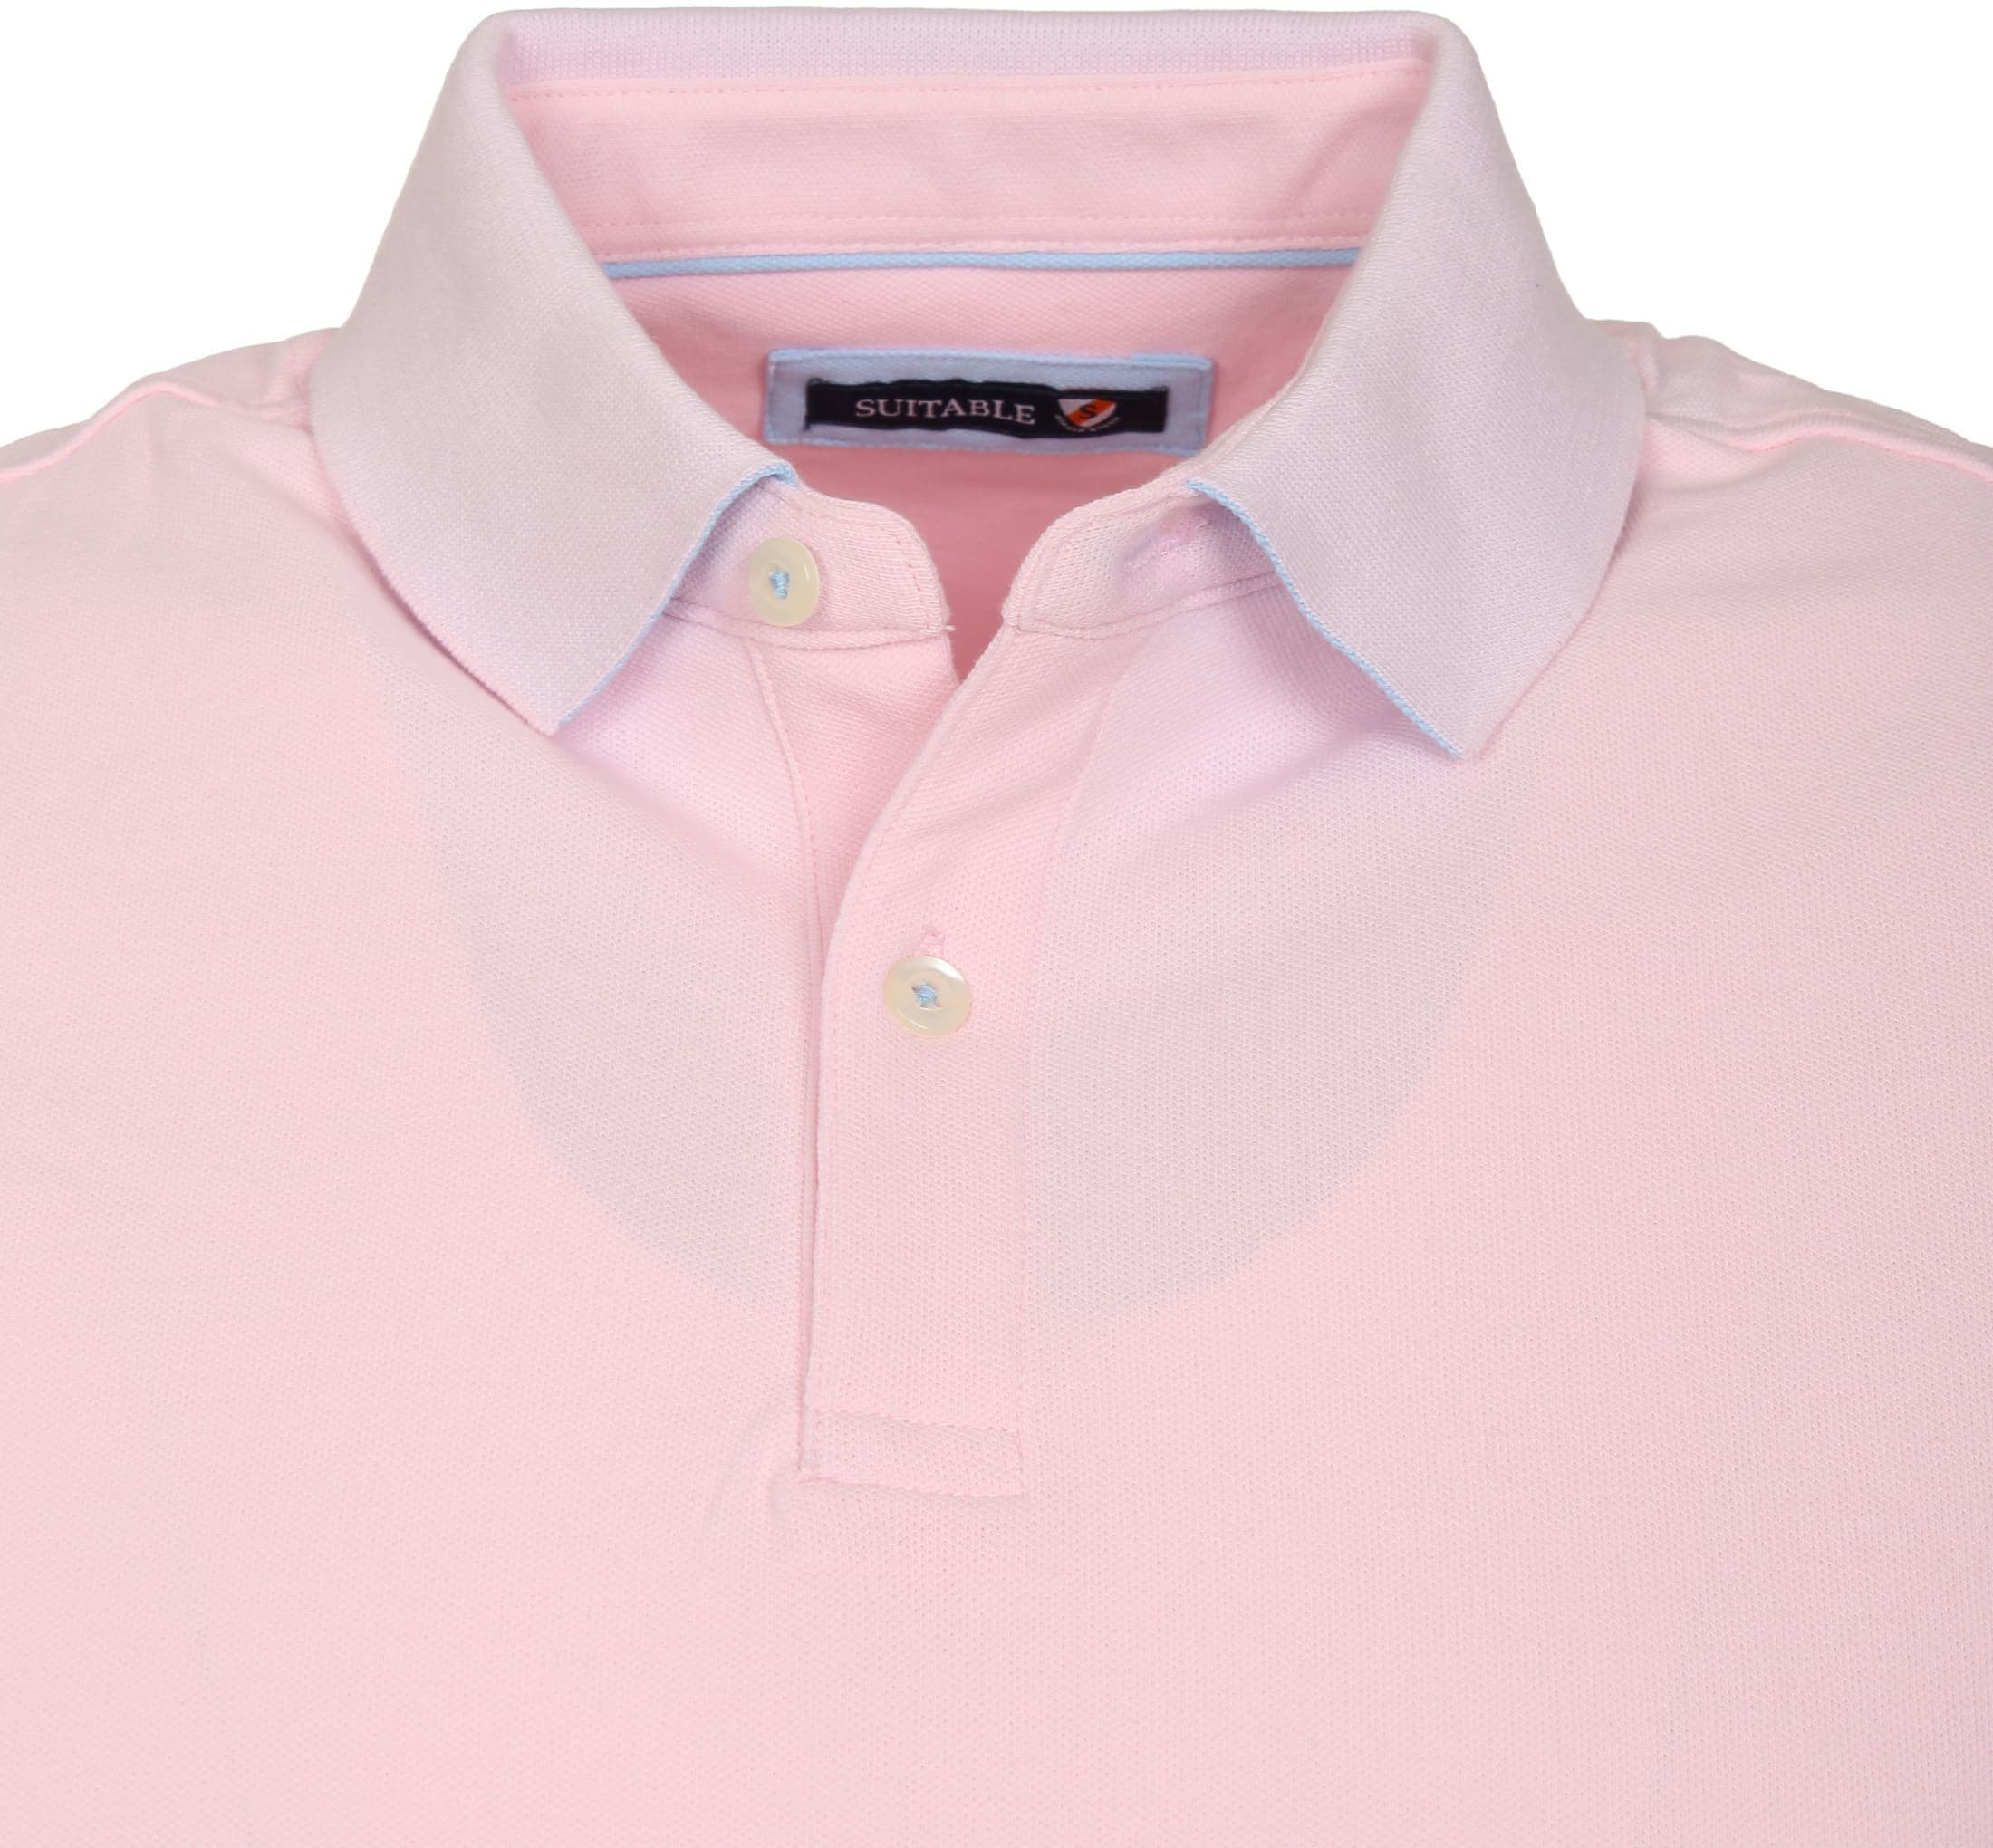 Suitable Polo Basic Roze foto 1